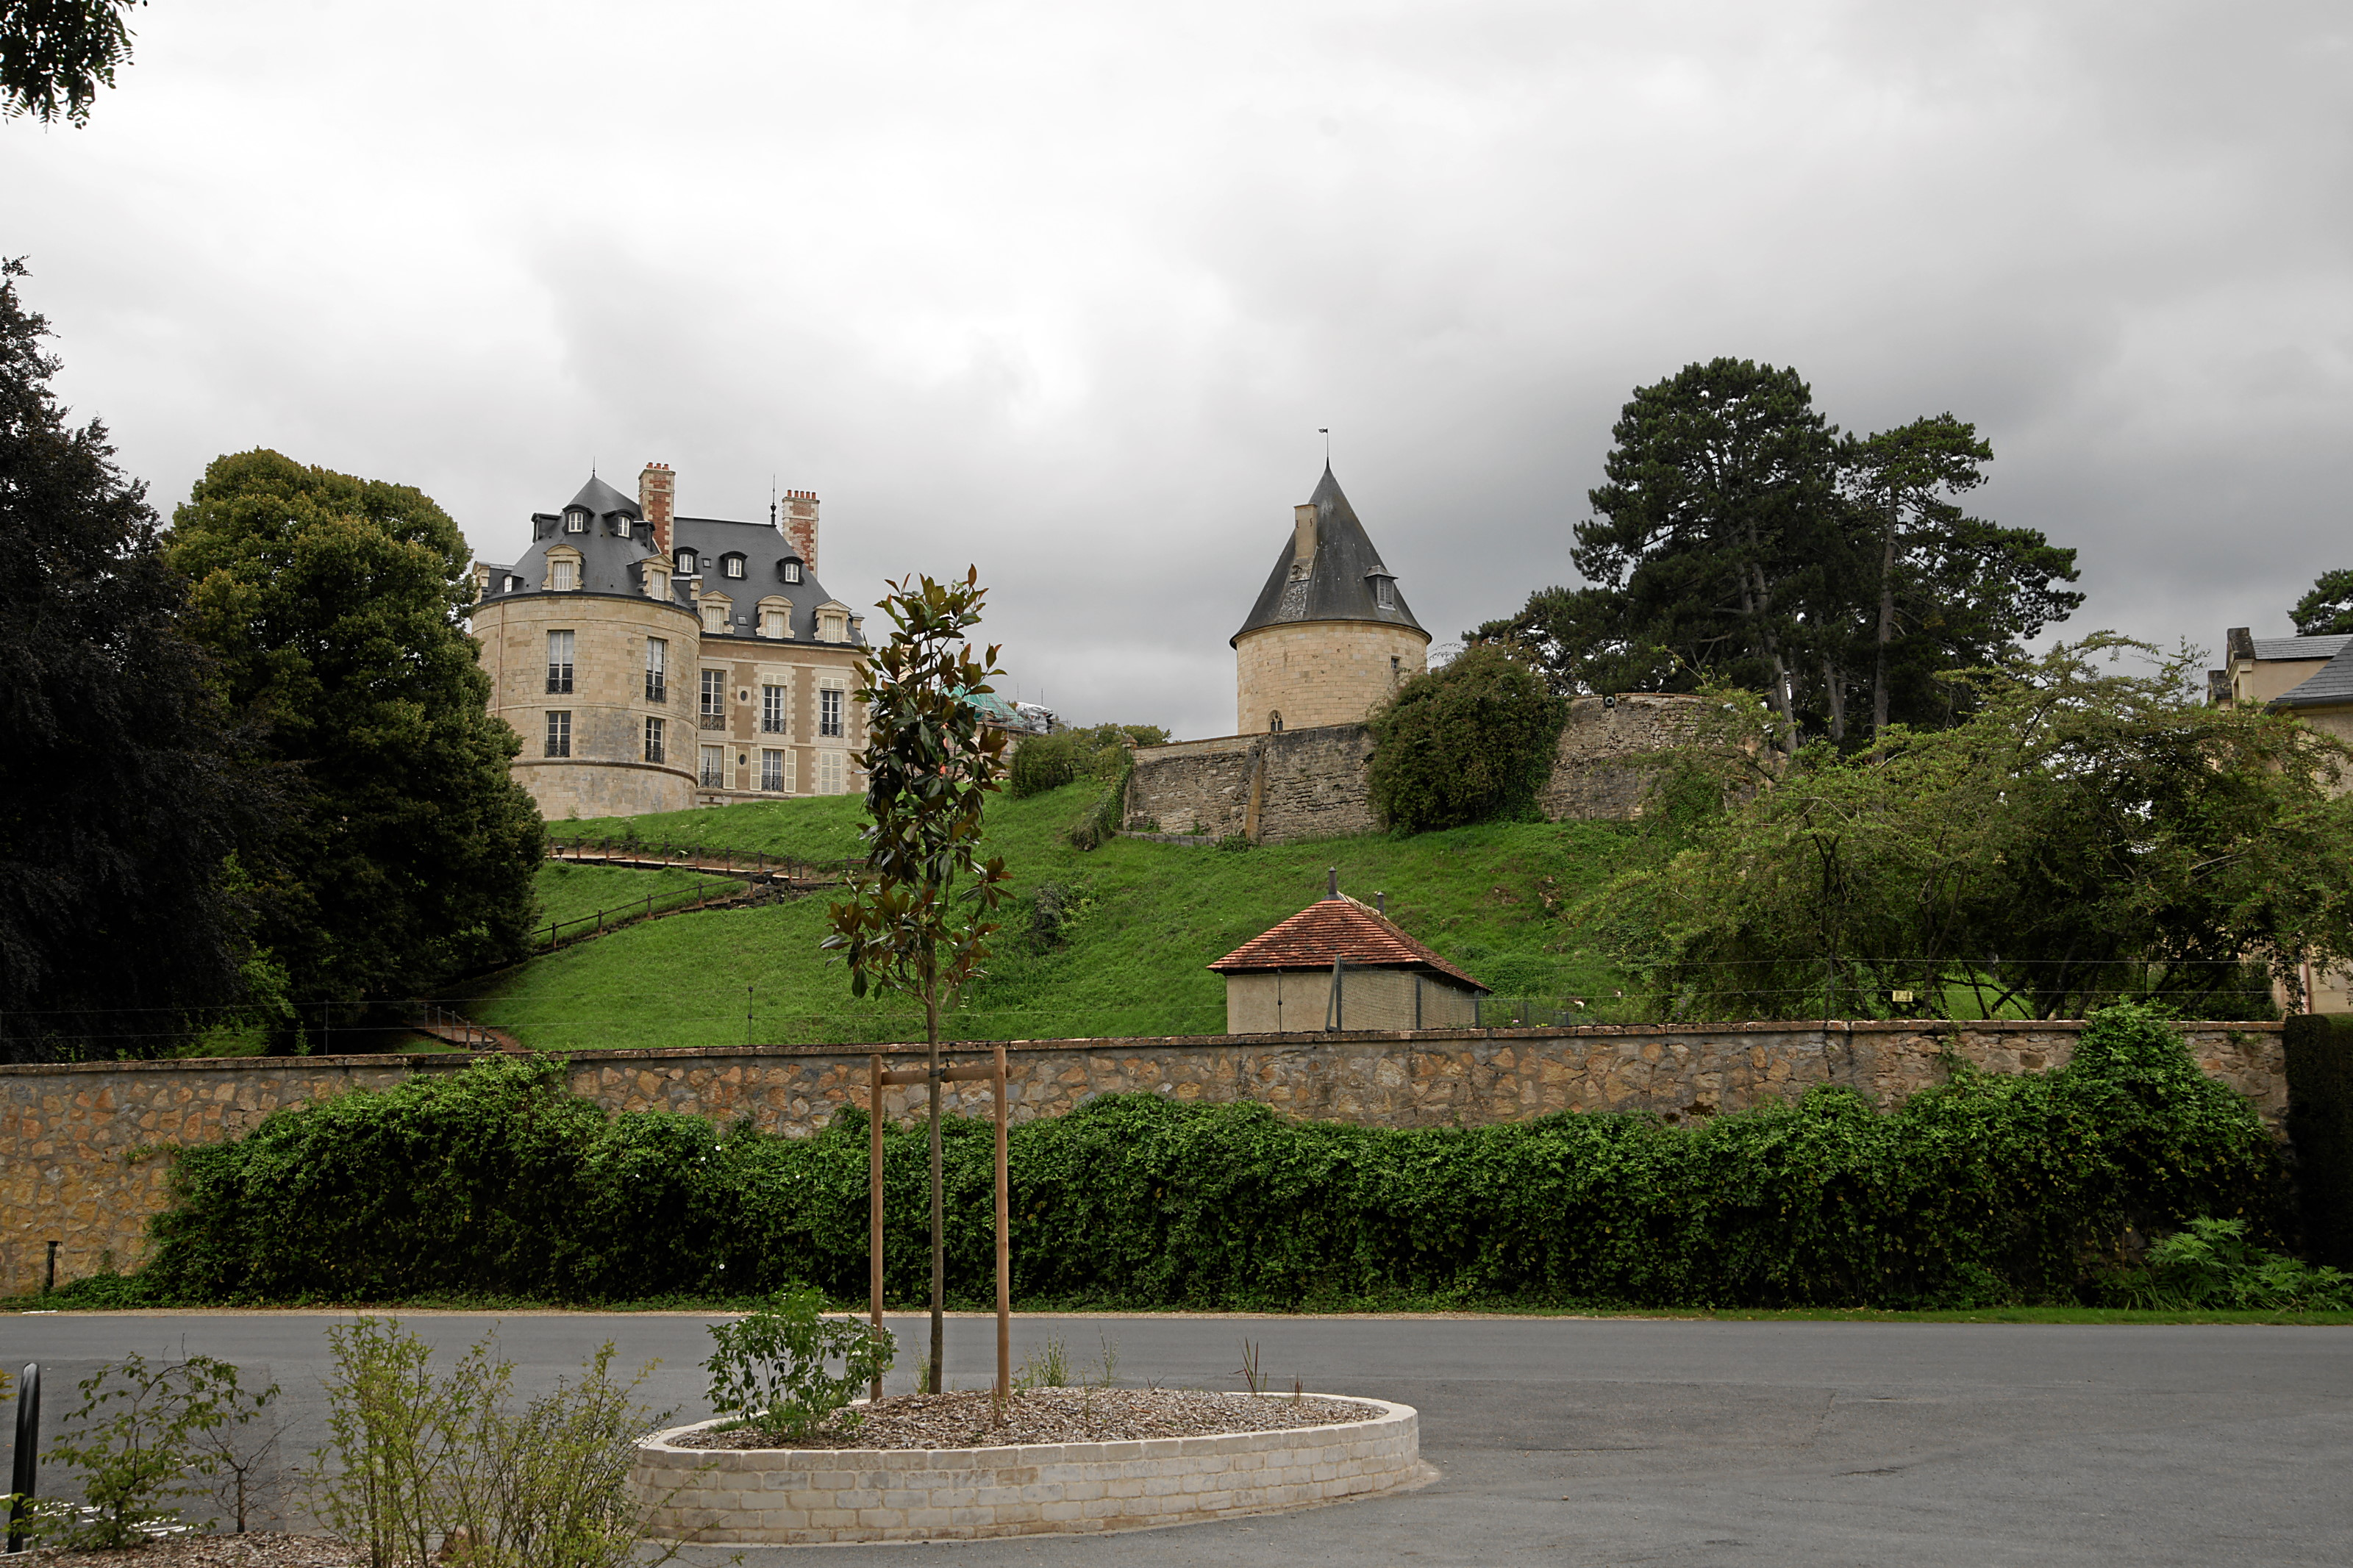 Apremont Sur Allier Chateau File Apremont Chateau Jpg Wikimedia Commons